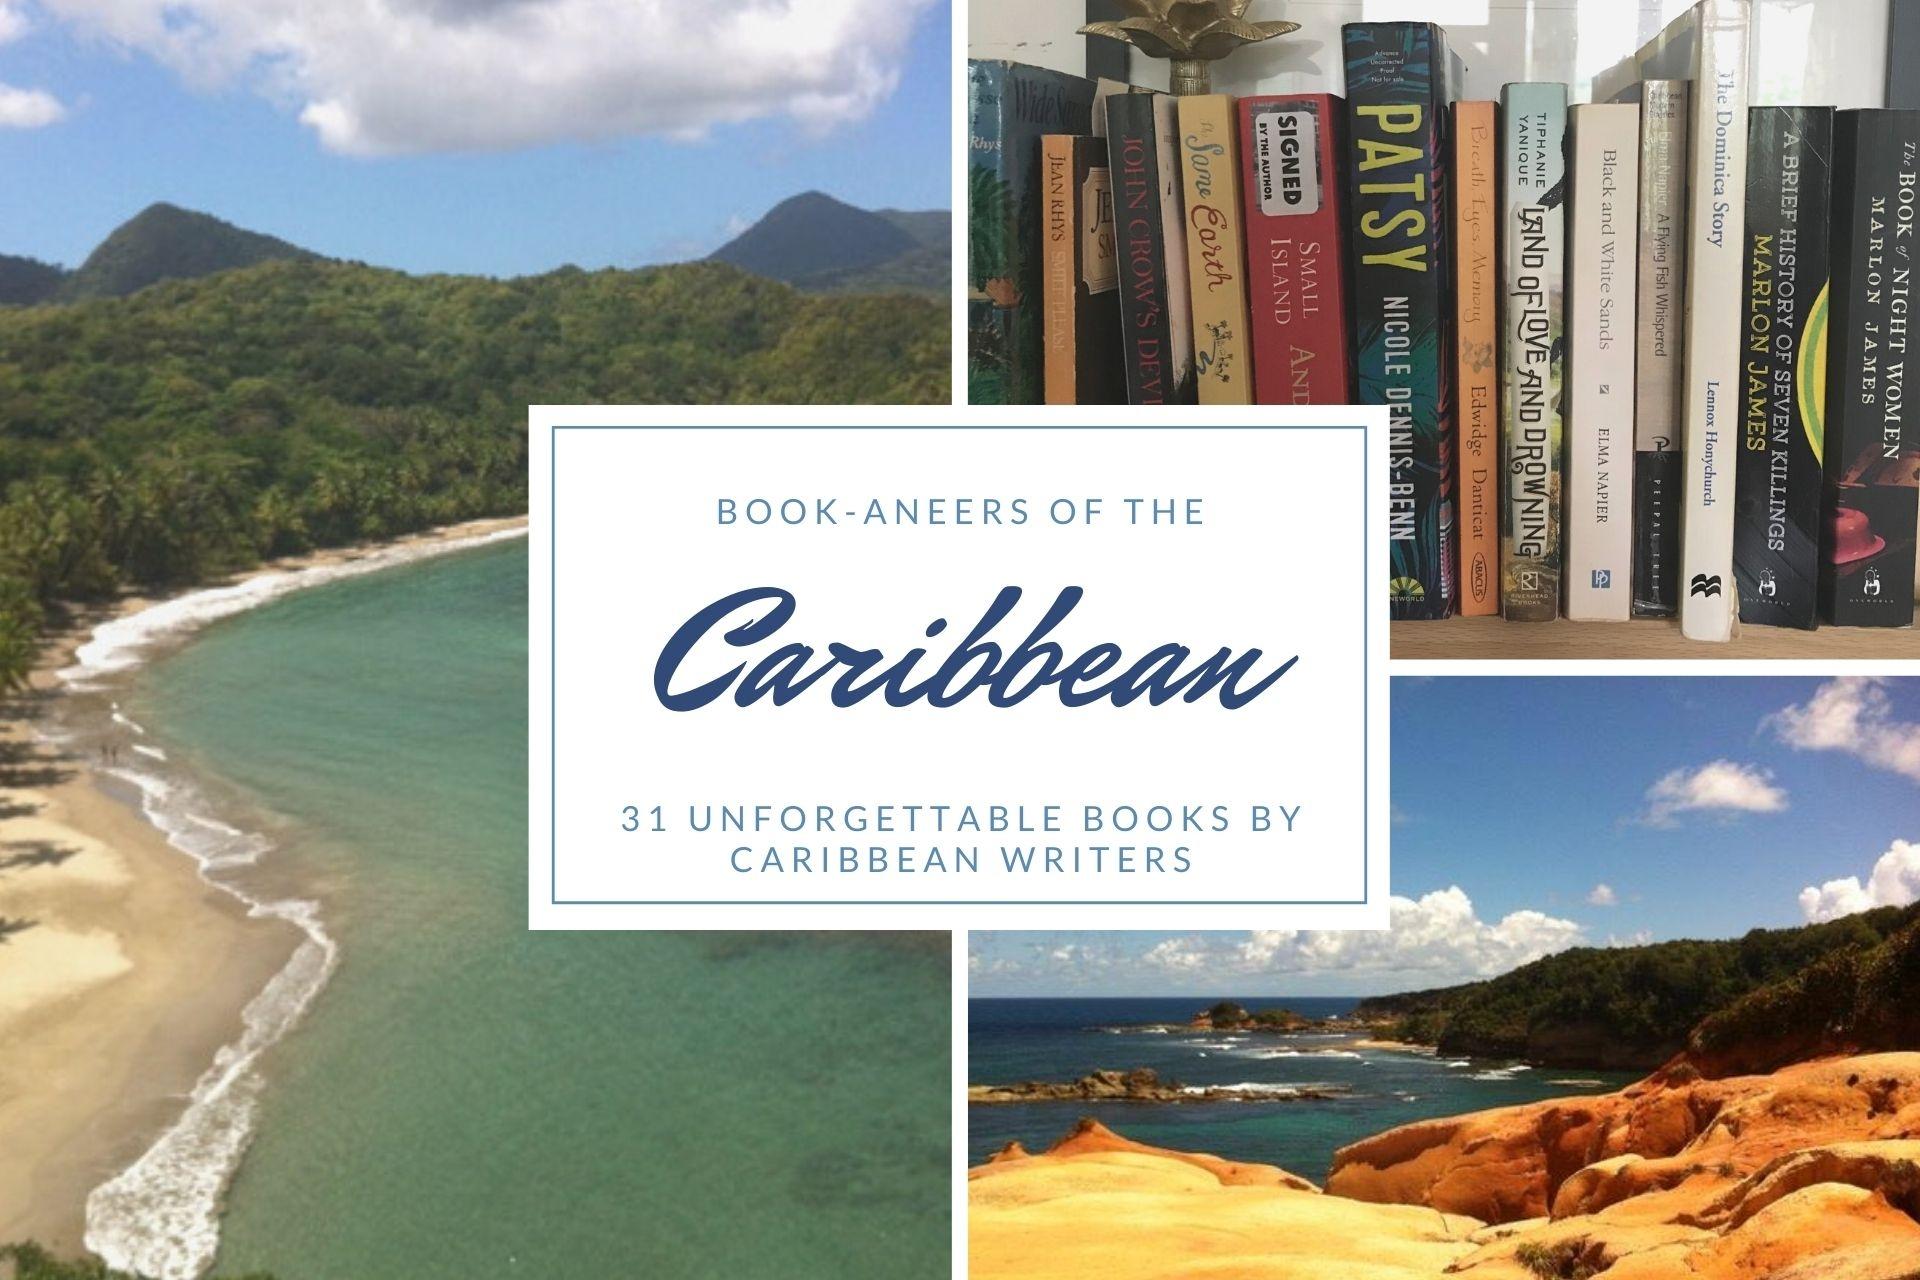 Book-aneers of the Caribbean – 31 unforgettable books by Caribbean writers